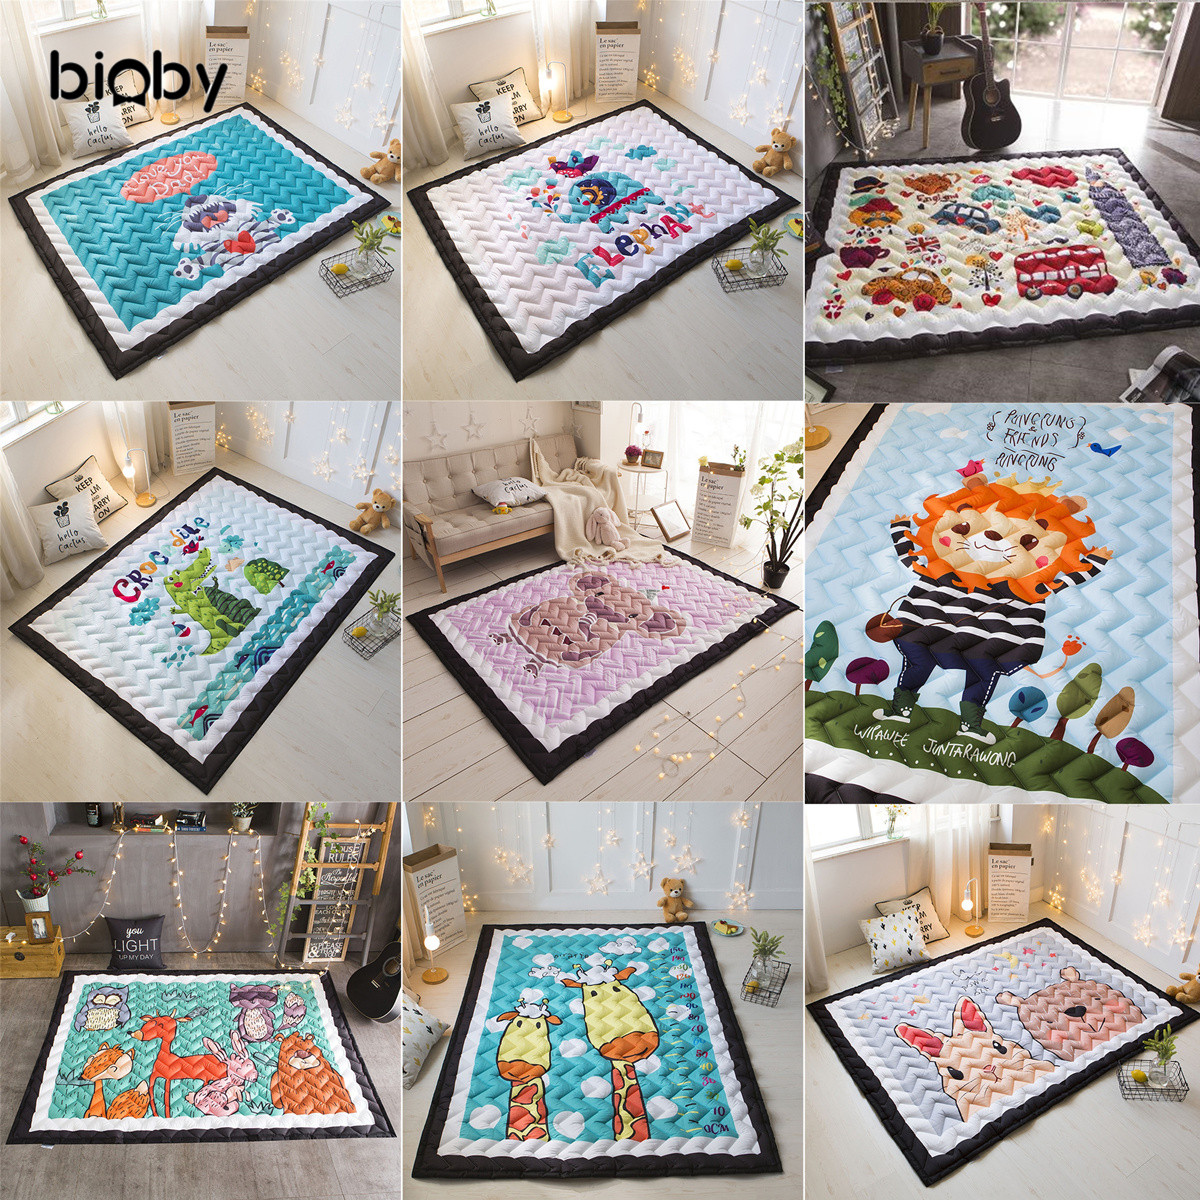 Baby Folding Room Crawling Play Game Mat Kids Thickened Carpet Infant Soft Floor Children Developing Gym Rug Outdoor Gift Pad baby floor rug musical developing gym mat for 2 10 months